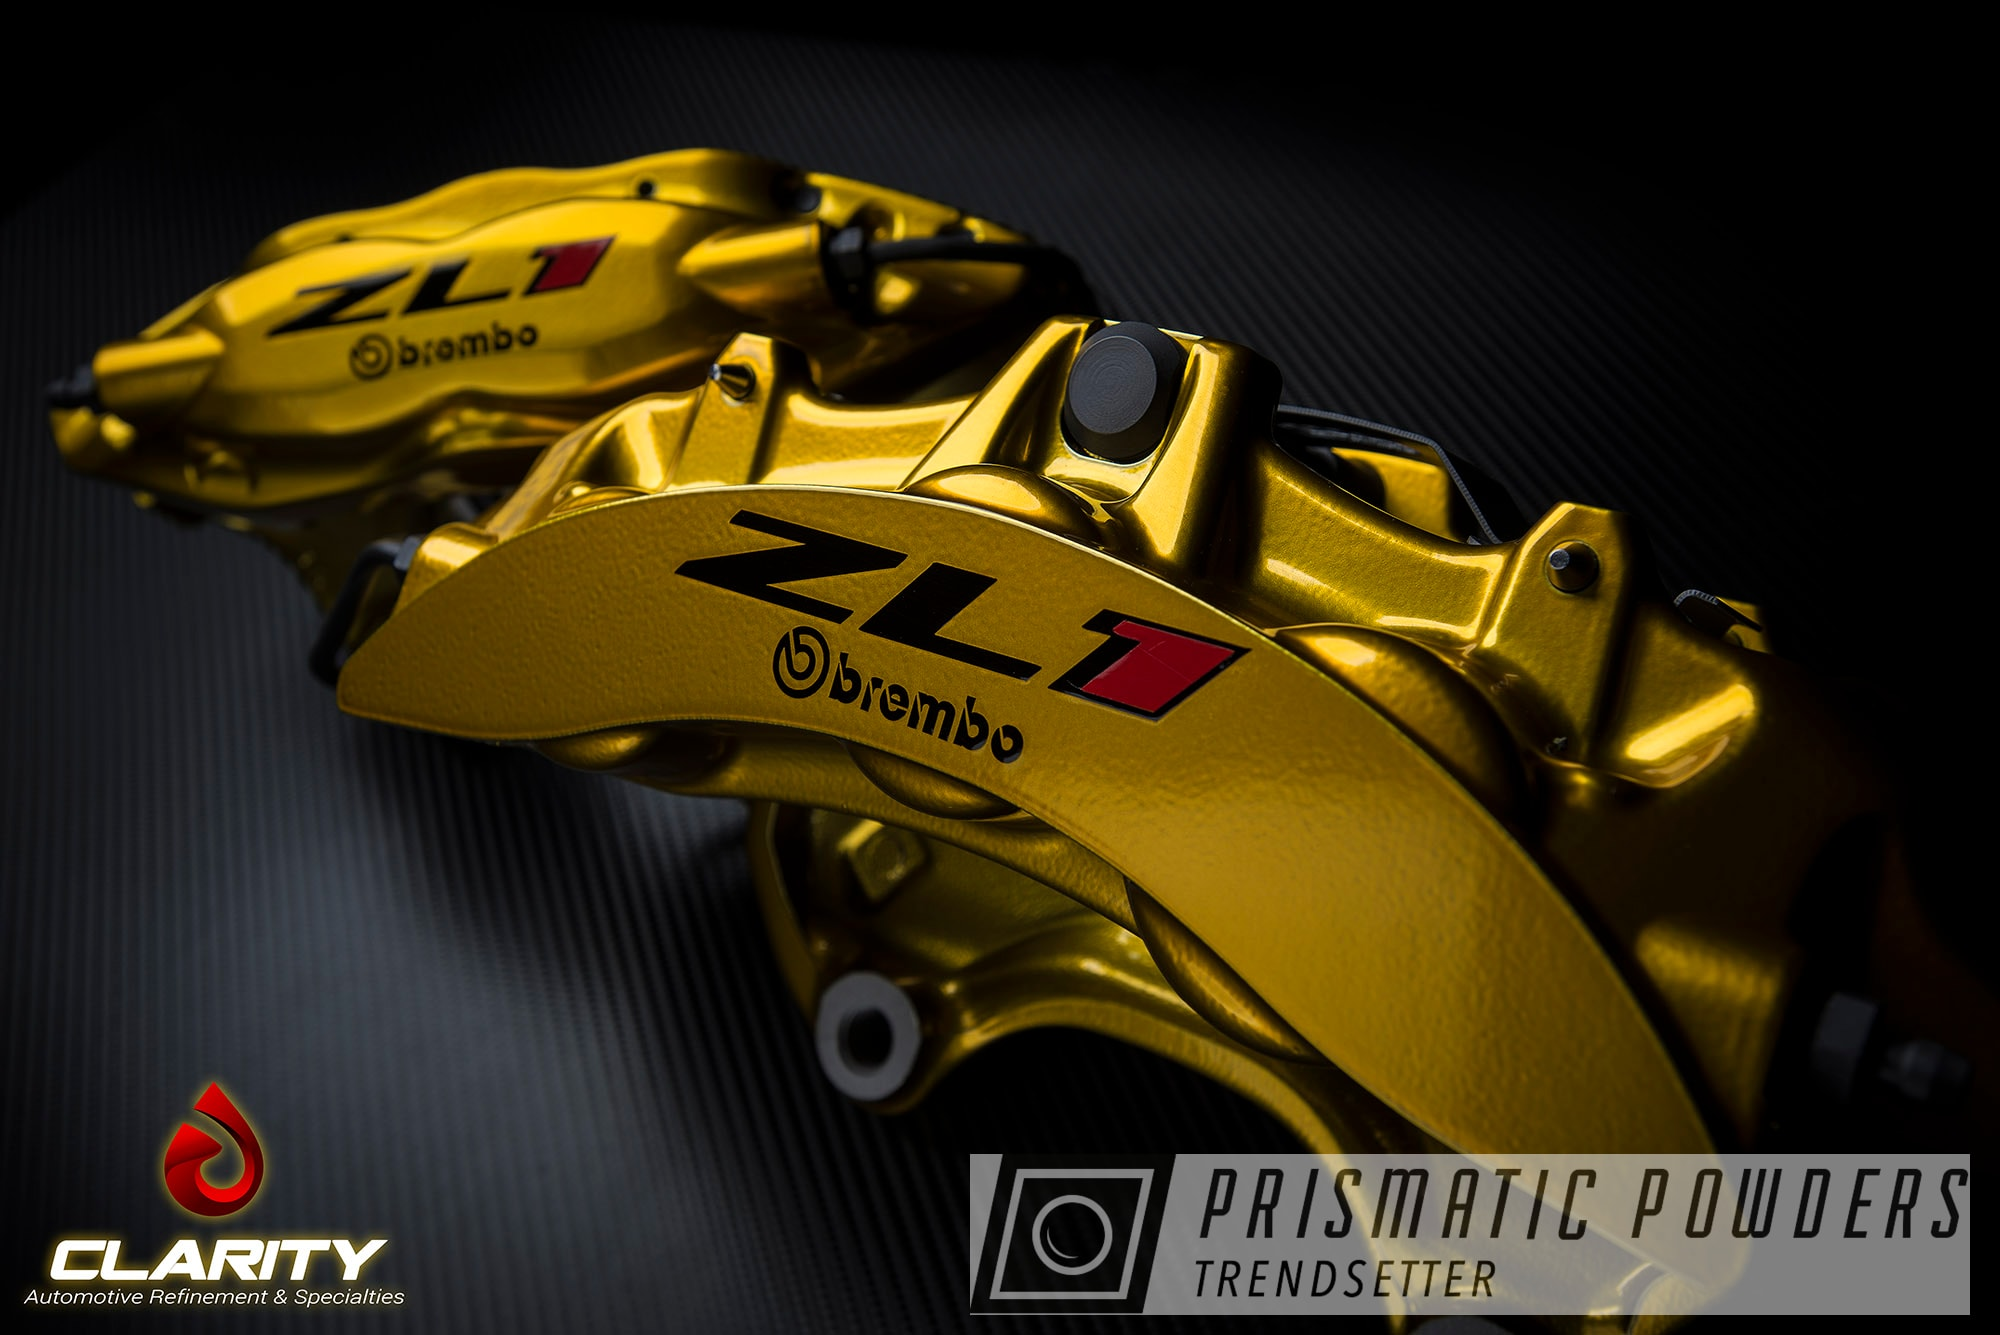 Powder Coating: Automotive,Illusion Gold PMB-10045,Clear Vision PPS-2974,Chevy Camaro,Brake Calipers,Brembo Brakes,Brembo Brake Calipers,Camaro ZL1,Camaro